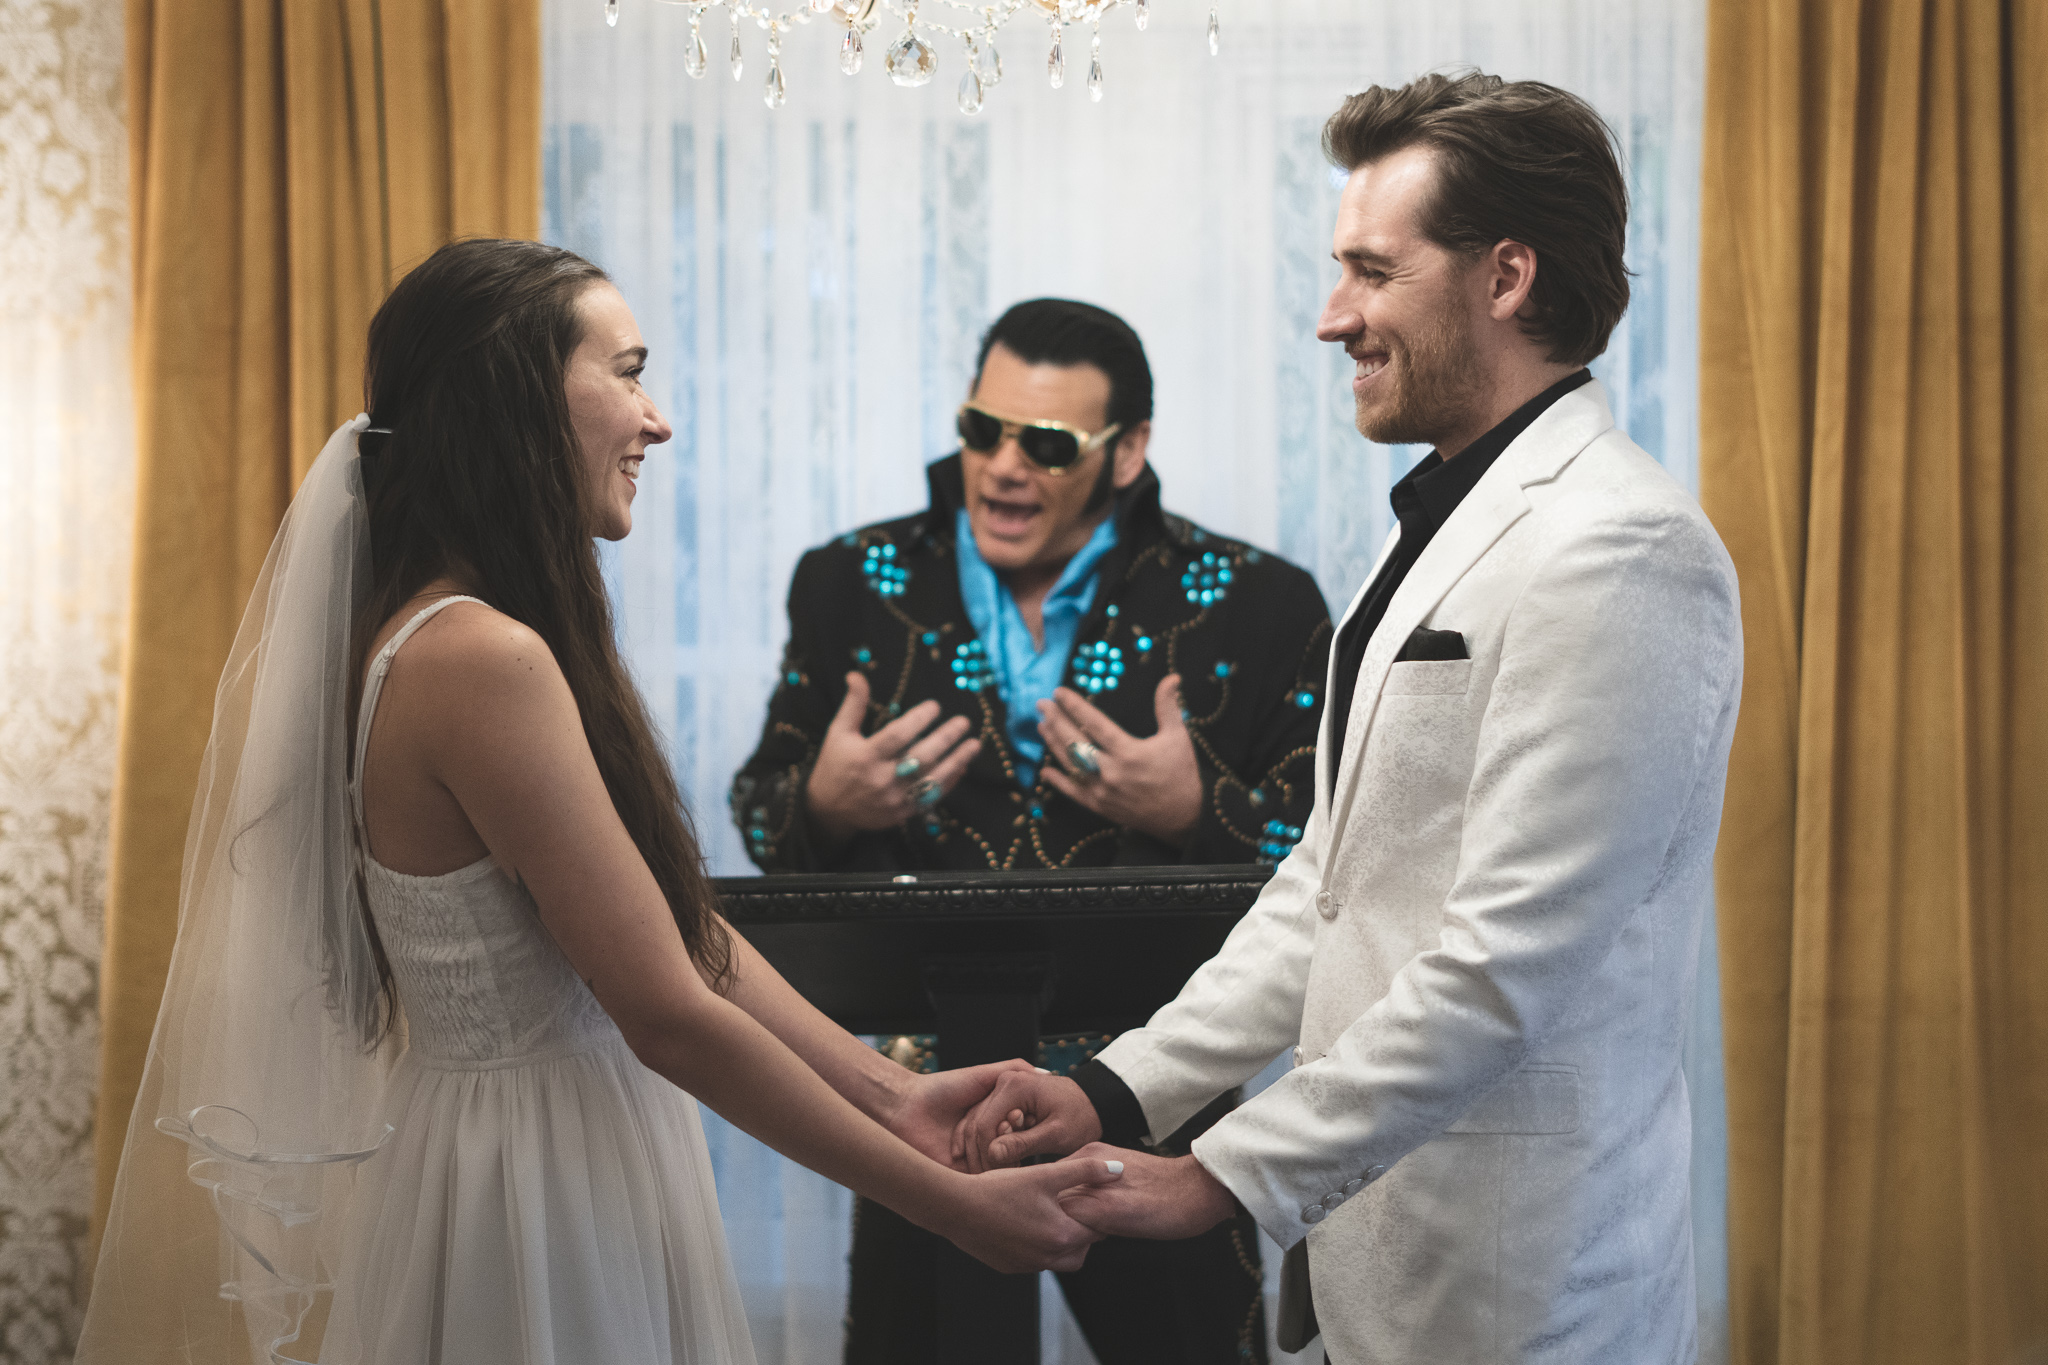 Elvis Inspired Elopement at Rhinestone Wedding Chapel | Nashville Bride Guide